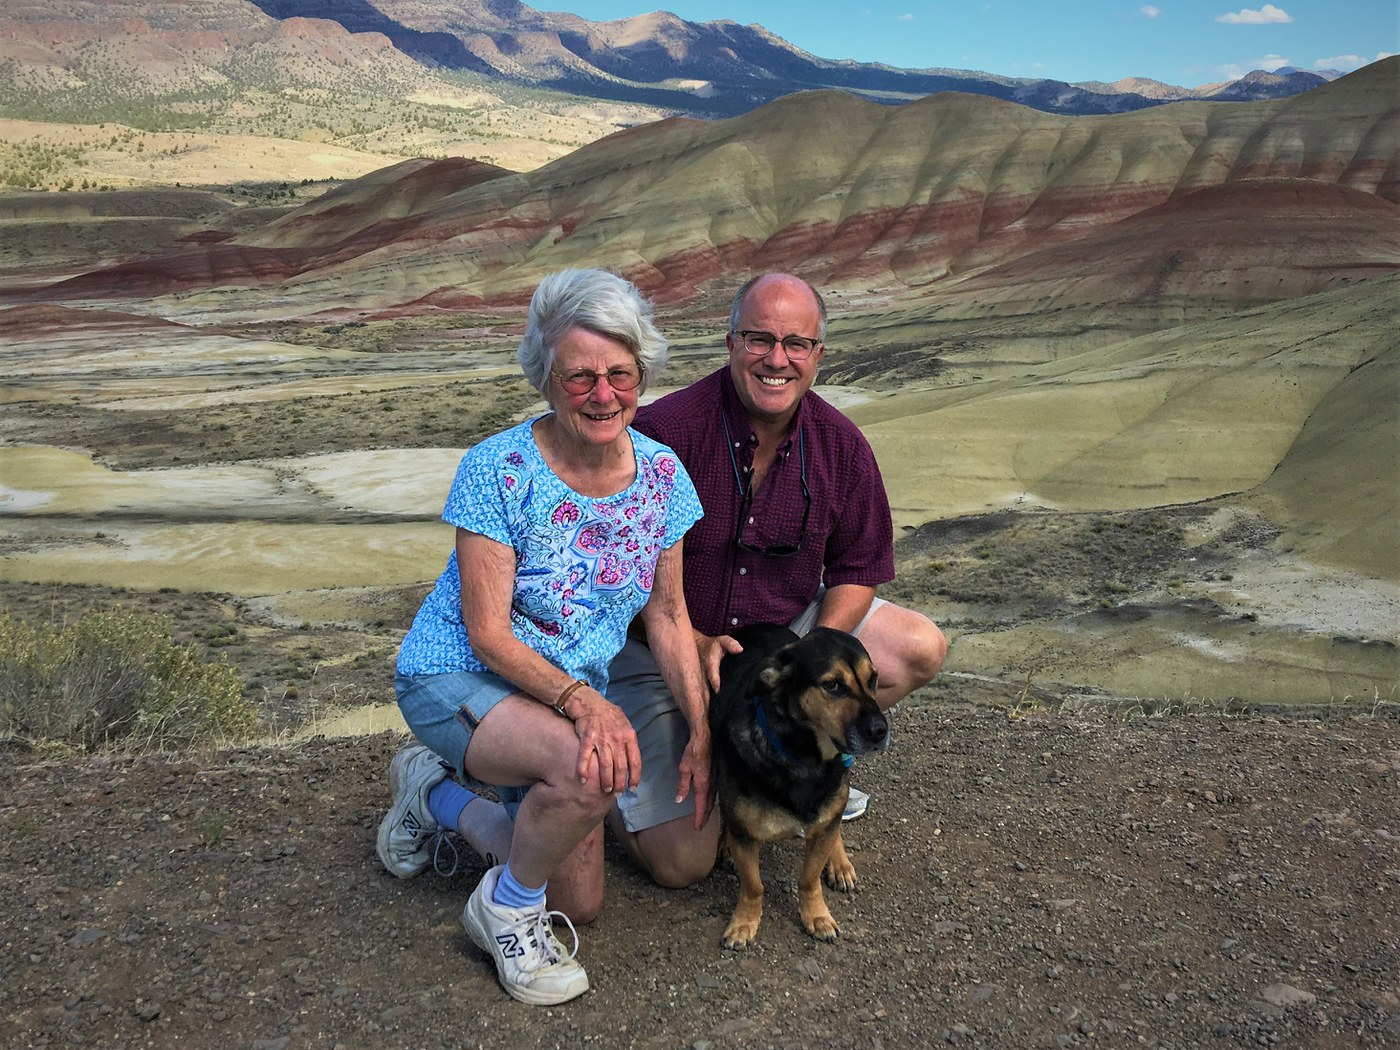 Eric Olson and his mother Phoebe pose for a photo during a hike. Photo: Provided.